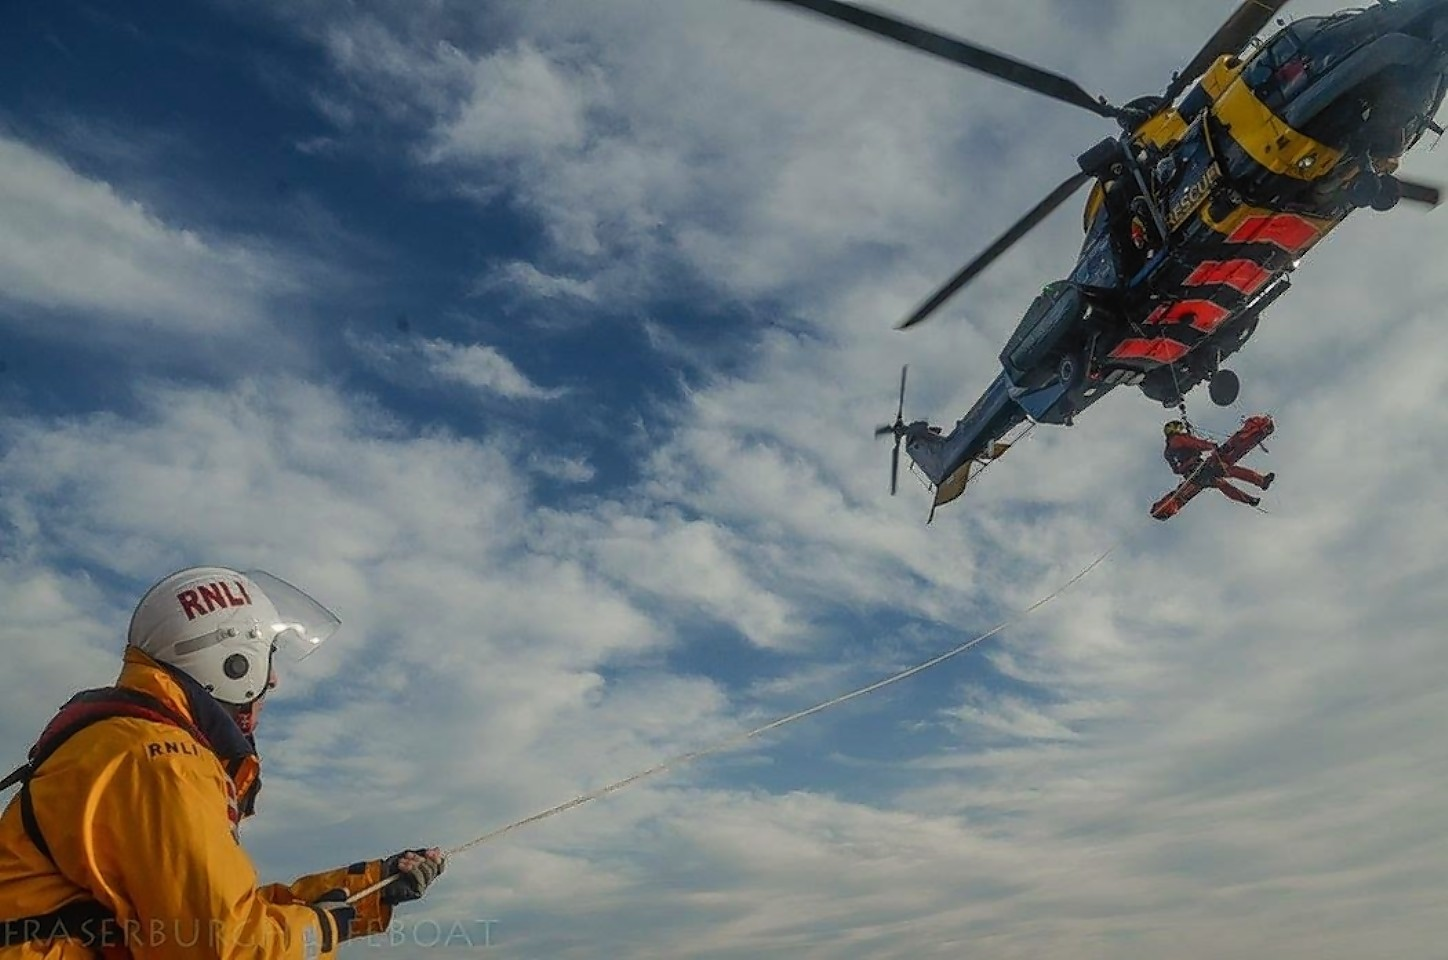 Picture courtesy of Fraserburgh Lifeboat volunteers